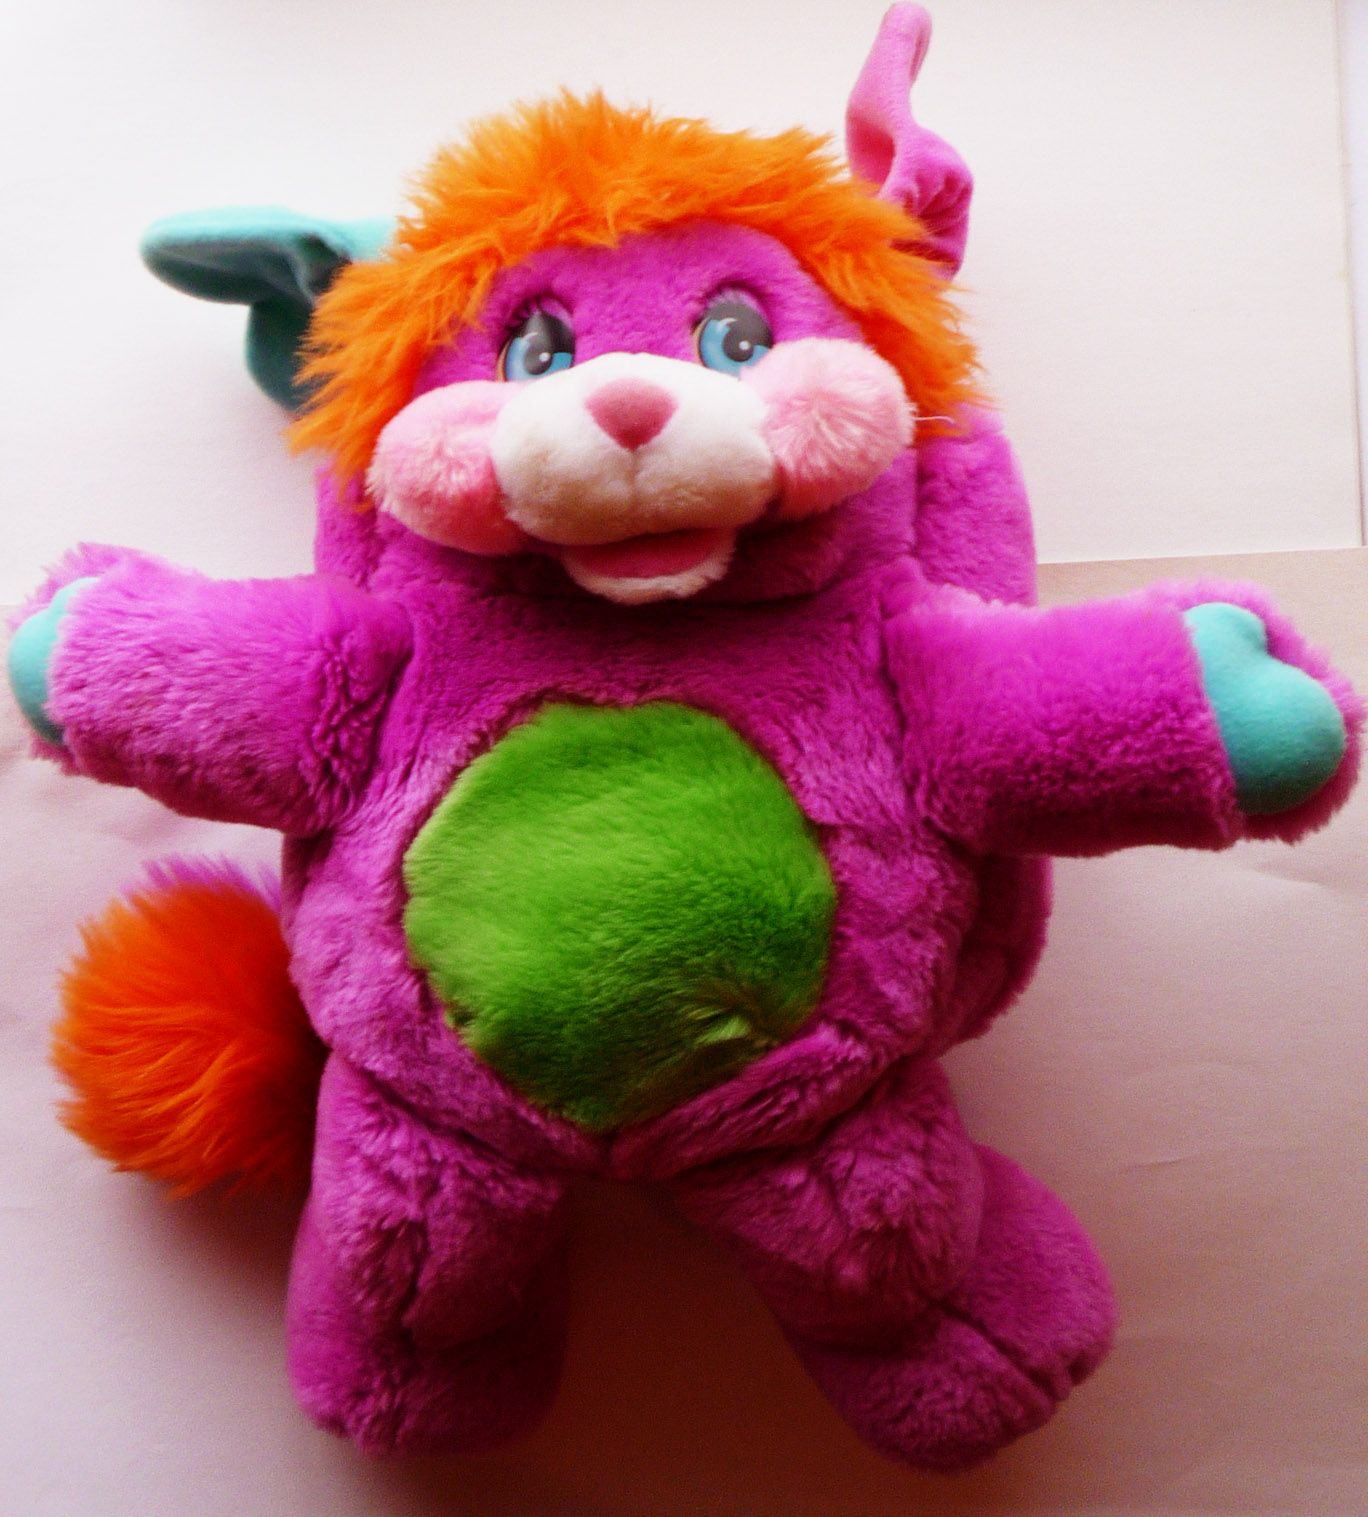 This is the exact Popple that I had!  And I still have it!  Named him Ripley after Sigourney Weaver's character in Alien :)